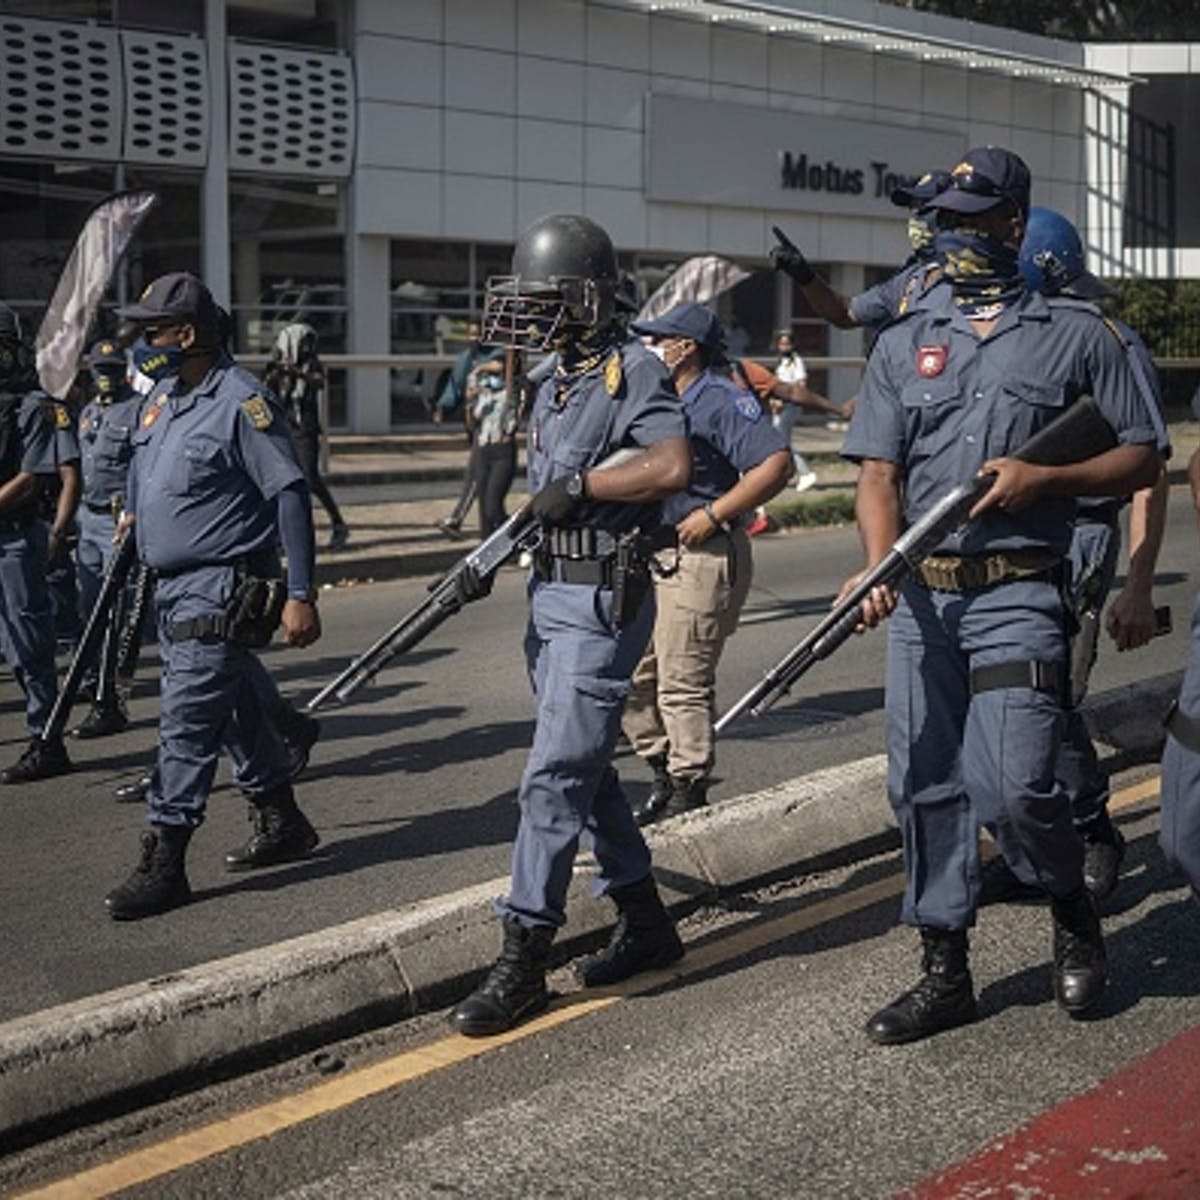 South Africa Needs To Address The Lingering Legacy Of Its Police Using Excessive Force